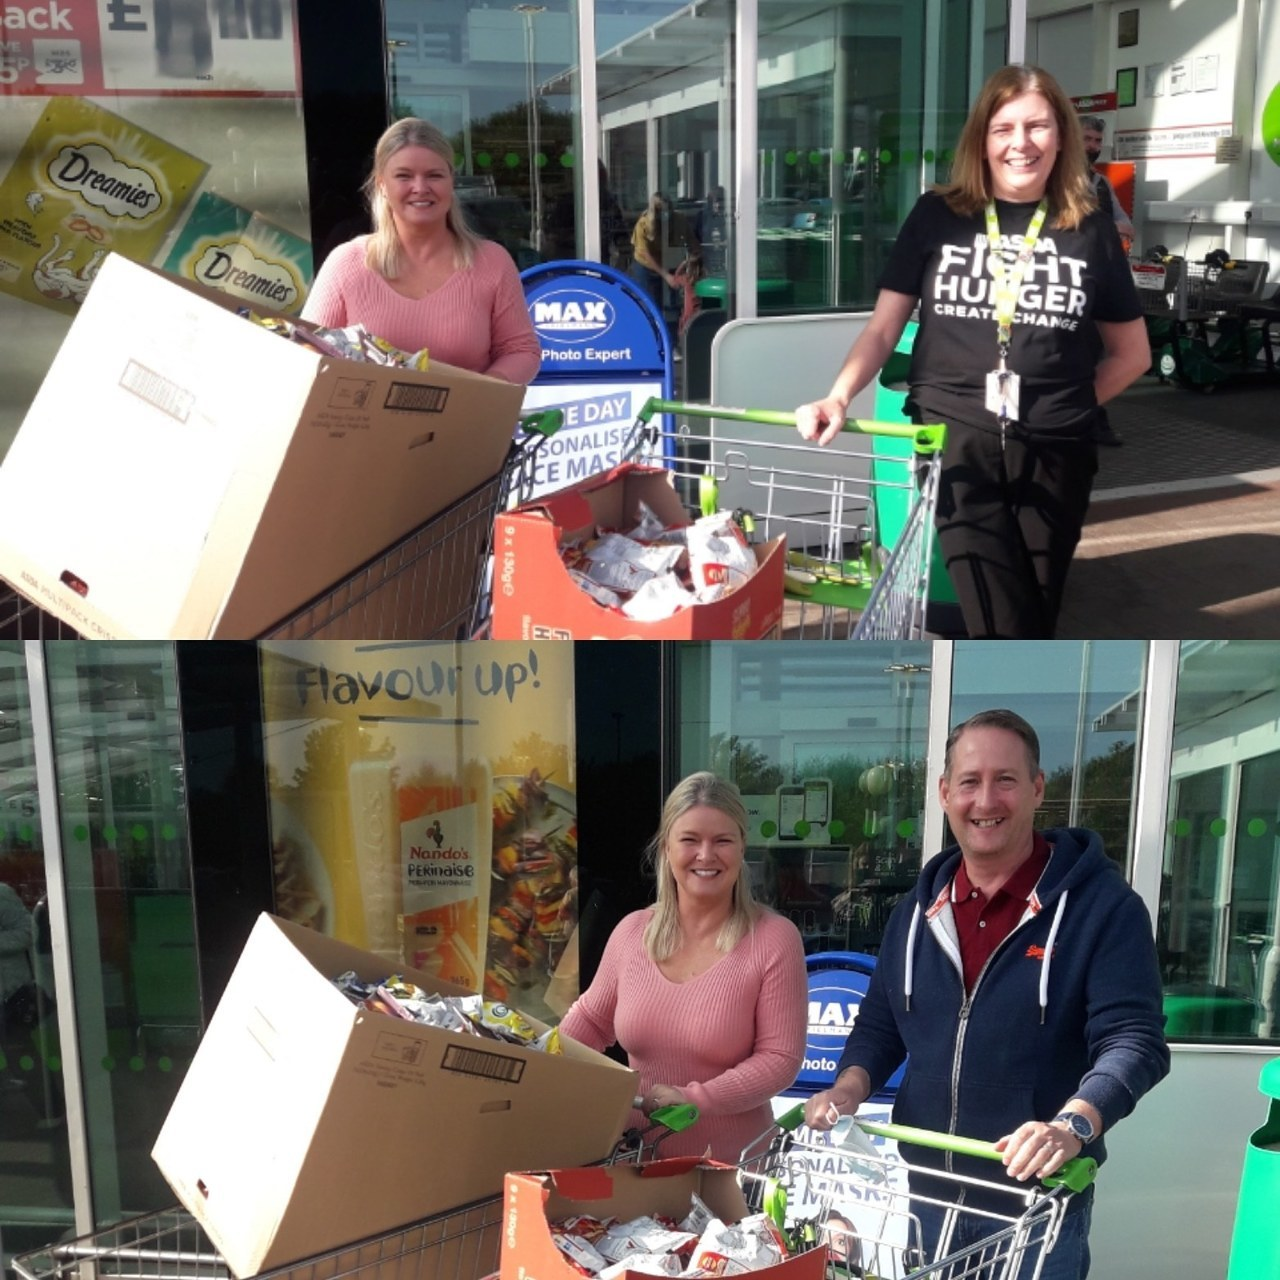 Hamilton Churches Drop In Centre donation | Asda Hamilton